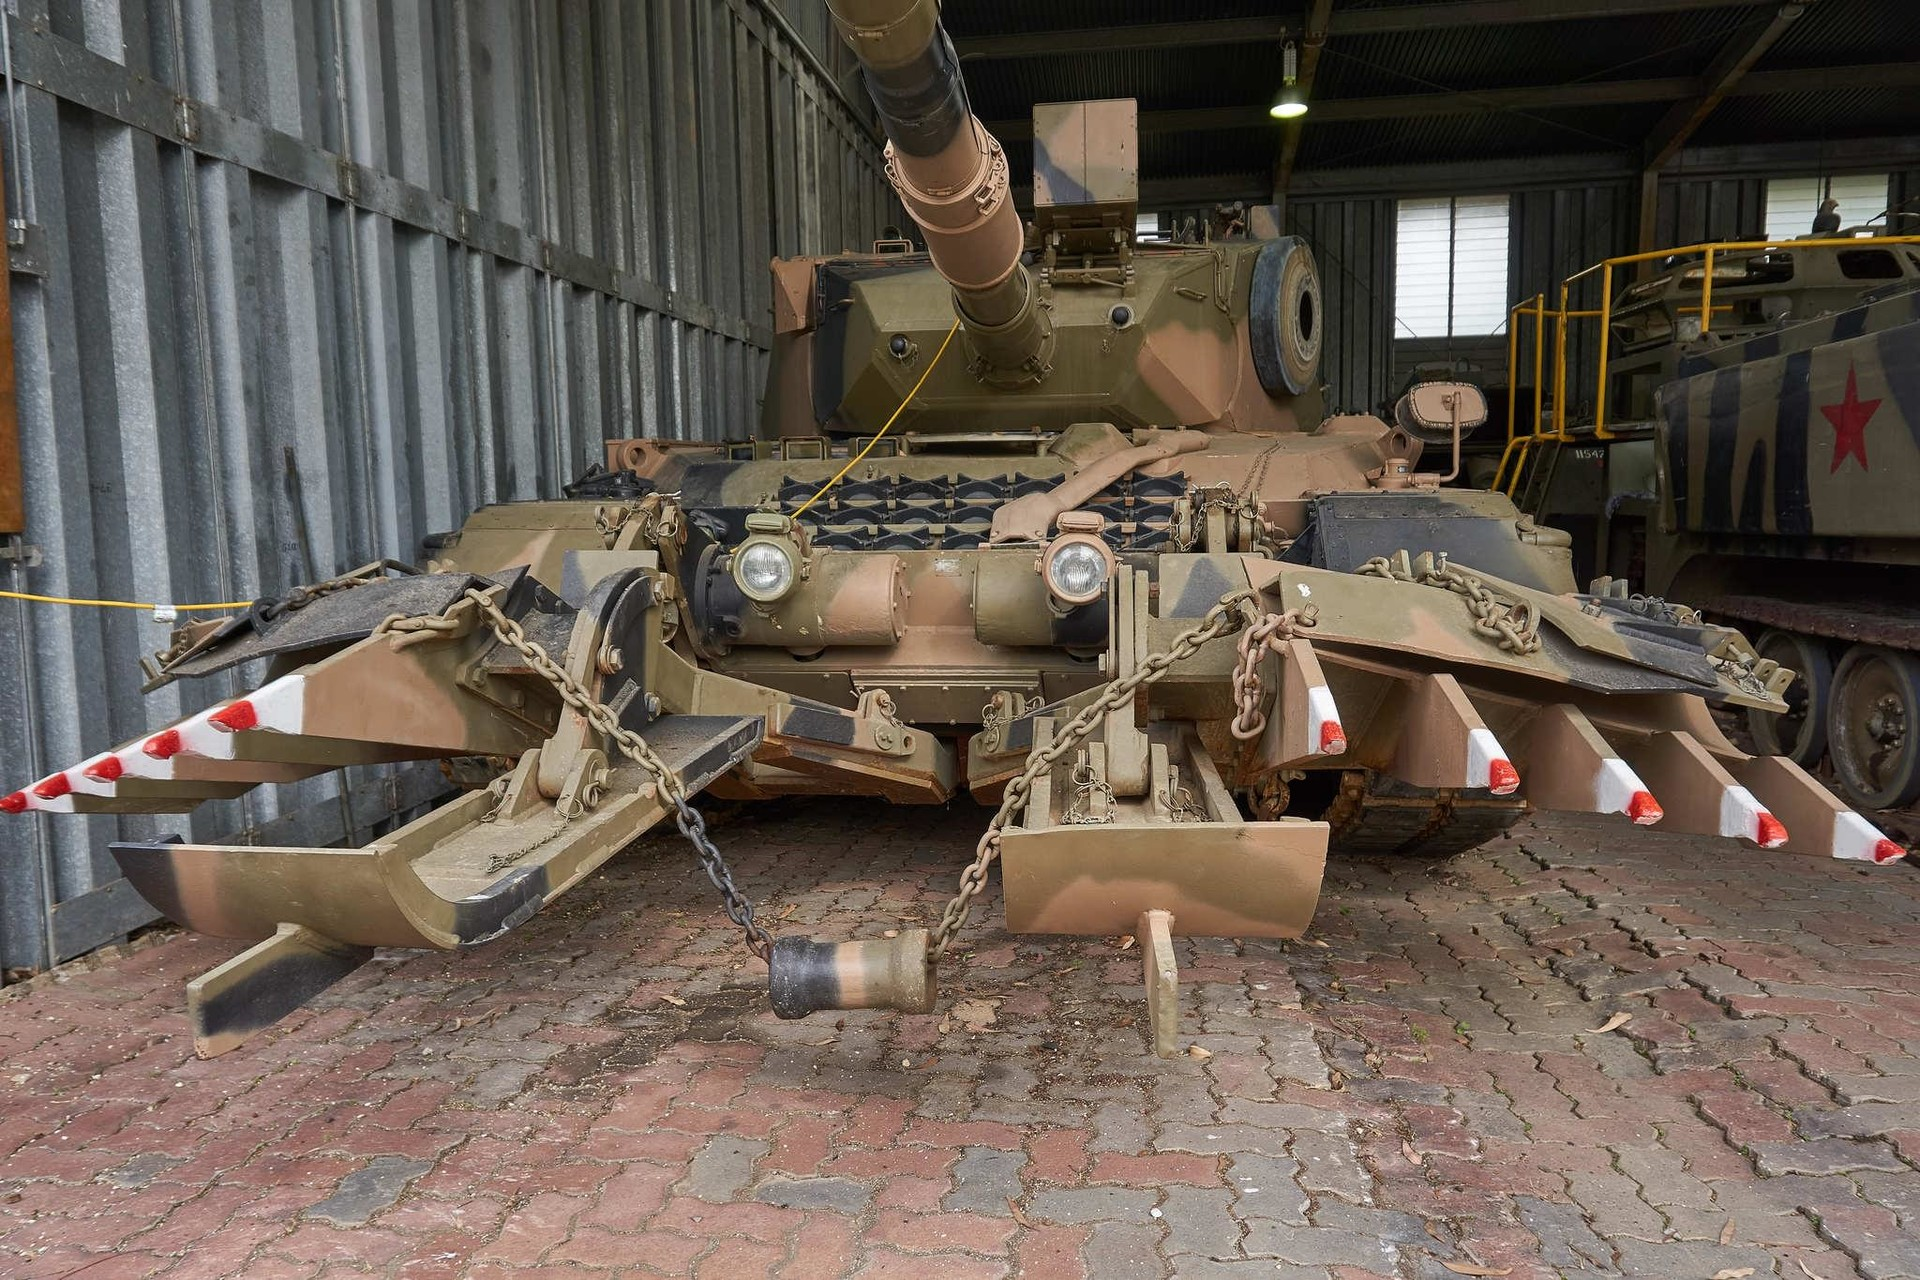 ArtStation - 41 photos of Leopard 1 German Tank, FOTOREF COM